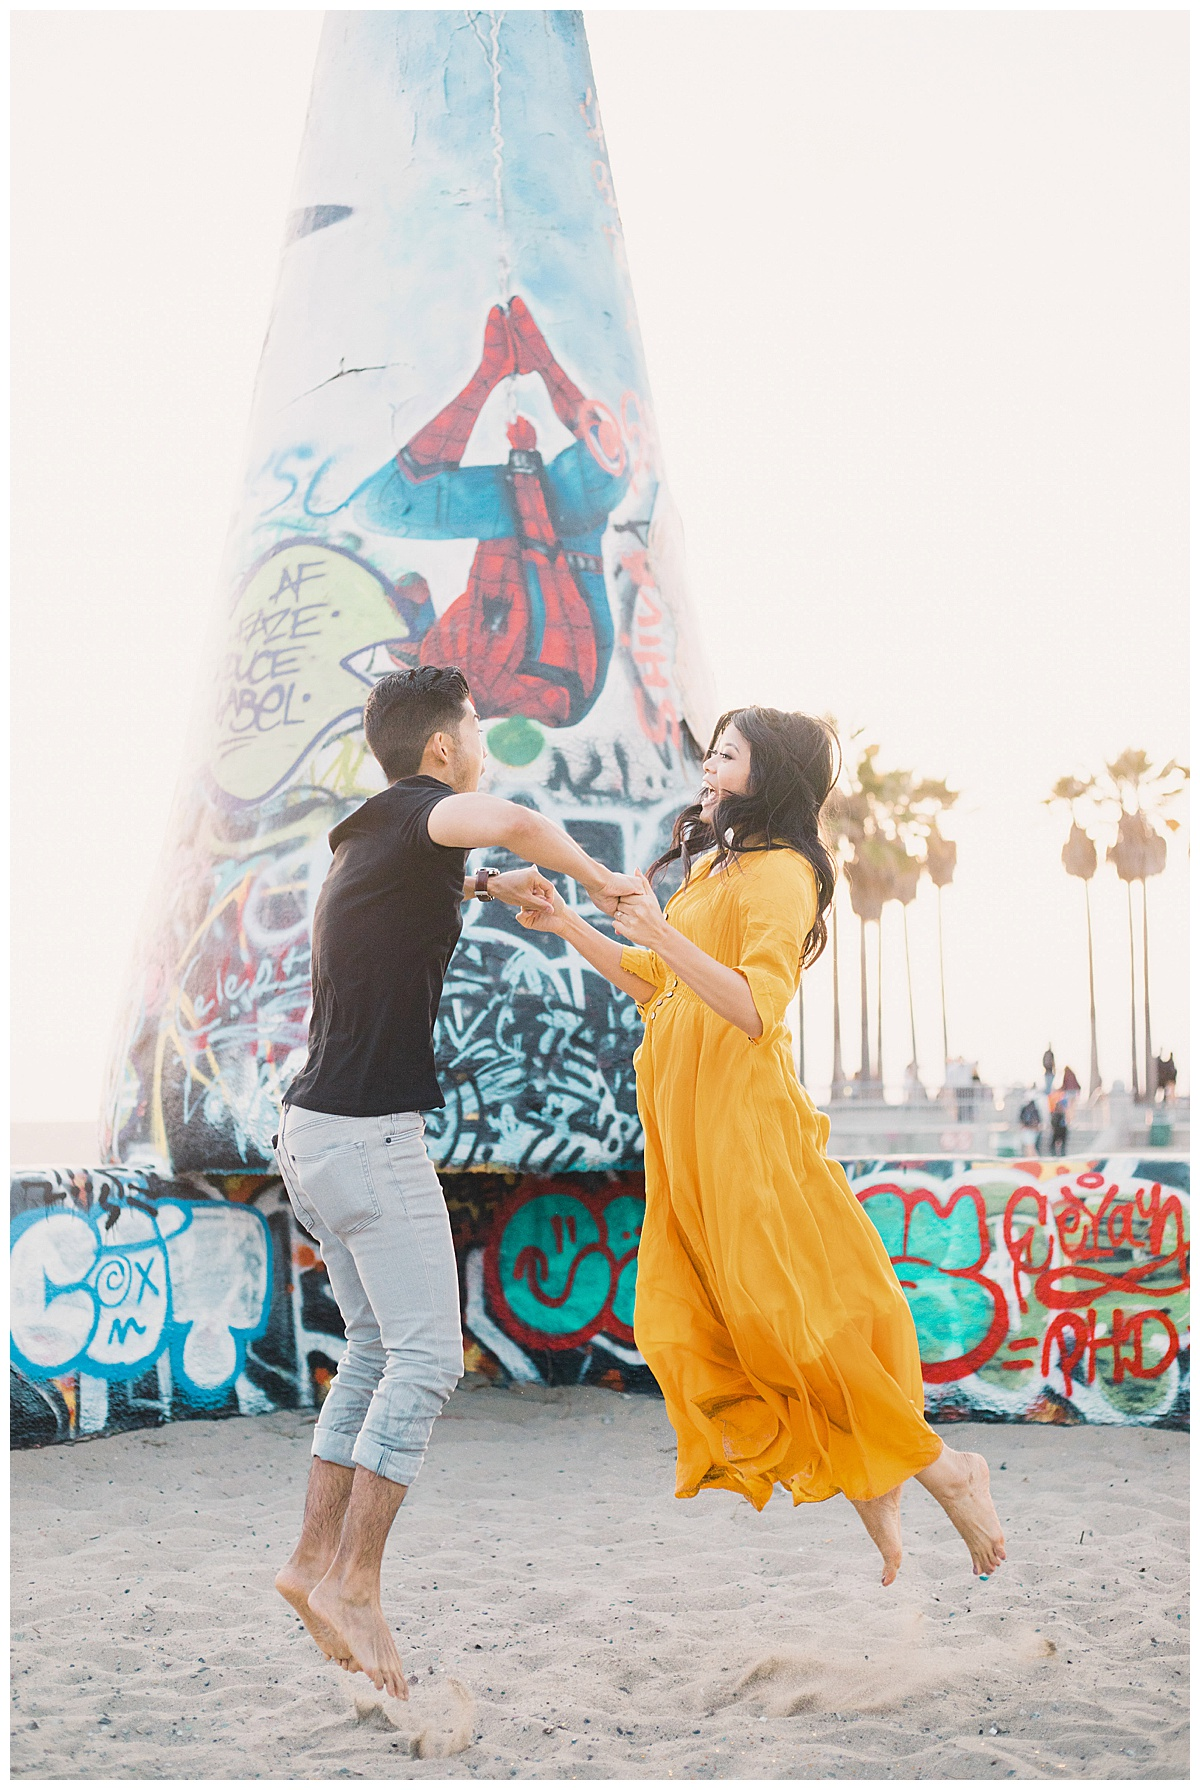 Venice Beach Photographer, Venice Beach Engagement, Venice Beach Canals Engagement, Venice Beach Wedding Photographer, Venice Beach Canals Engagement, Colorful Engagement Photographer, What to wear for engagement photos, Unique engagement photos, creative engagement photos, engagement photo ideas, Engagement photo outfits, Engagement Picture Outfits, Engagement pictures, save the date pictures